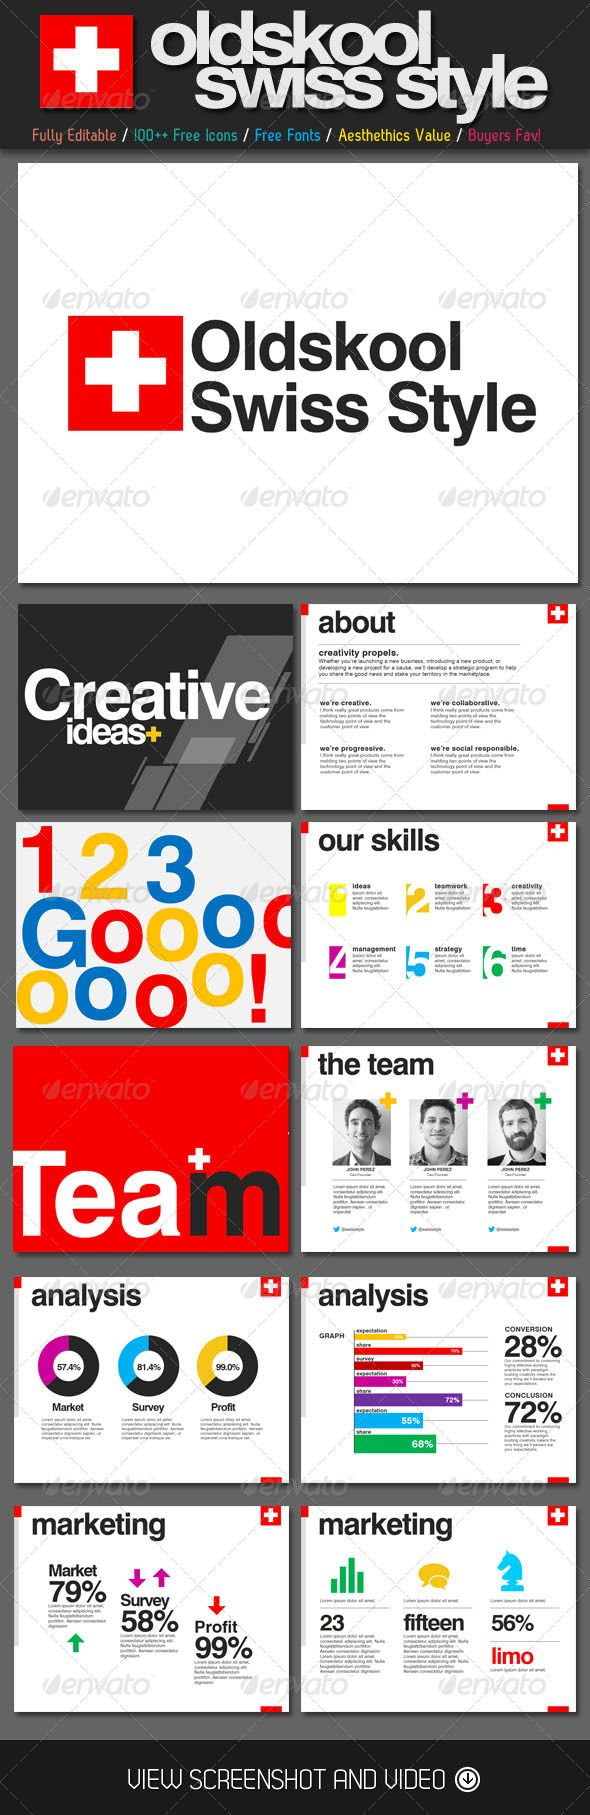 Oldskool swiss style powerpoint template creative powerpoint oldskool swiss style powerpoint template creative powerpoint templates toneelgroepblik Image collections